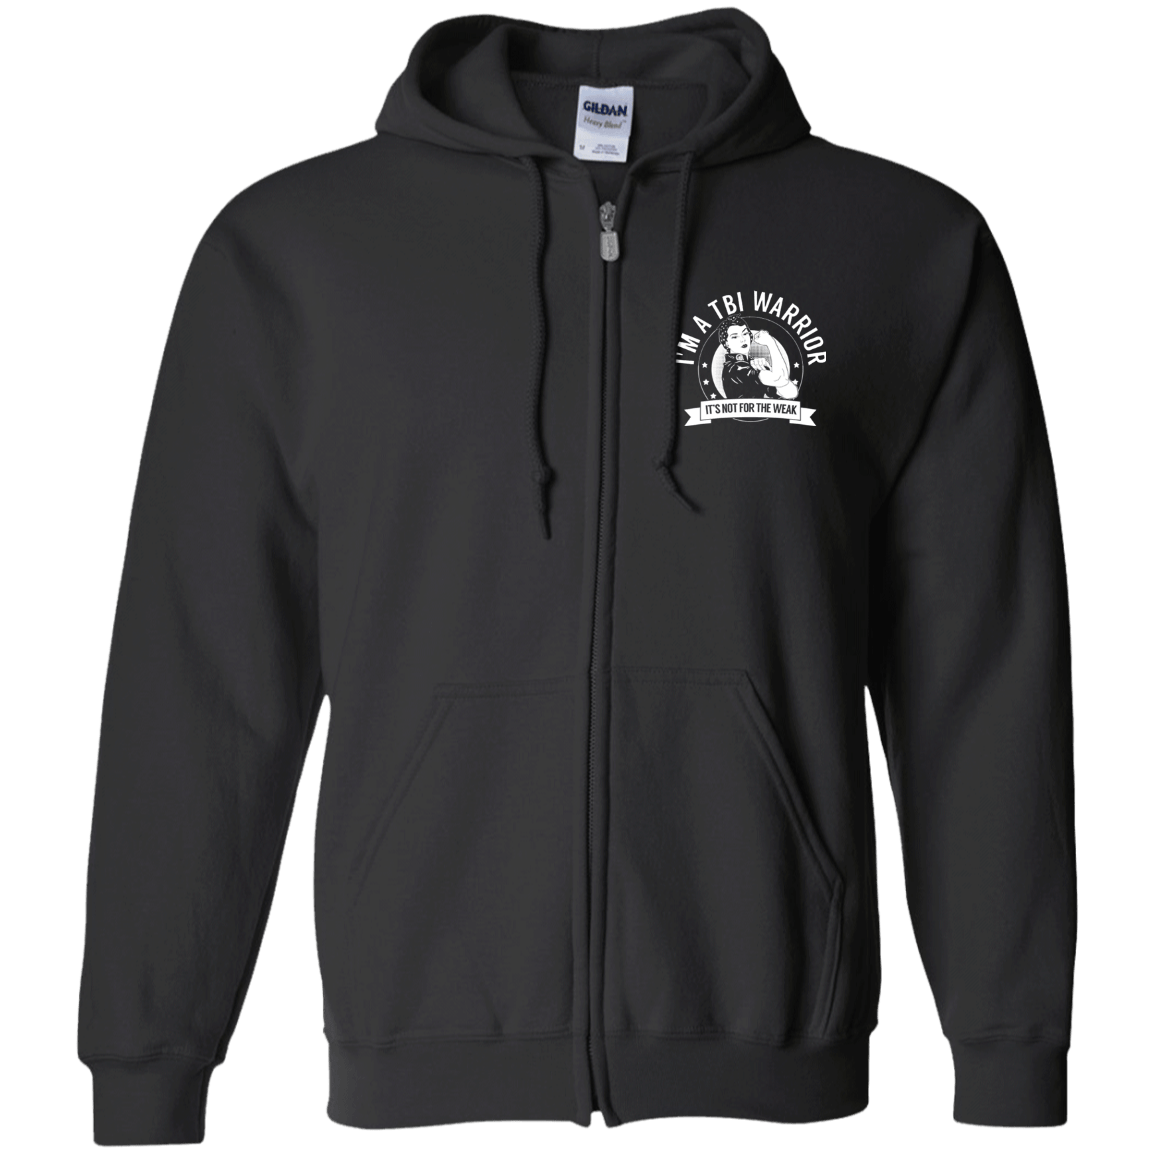 Sweatshirts - Traumatic Brain Injury - TBI Warrior NFTW Zip Up Hooded Sweatshirt